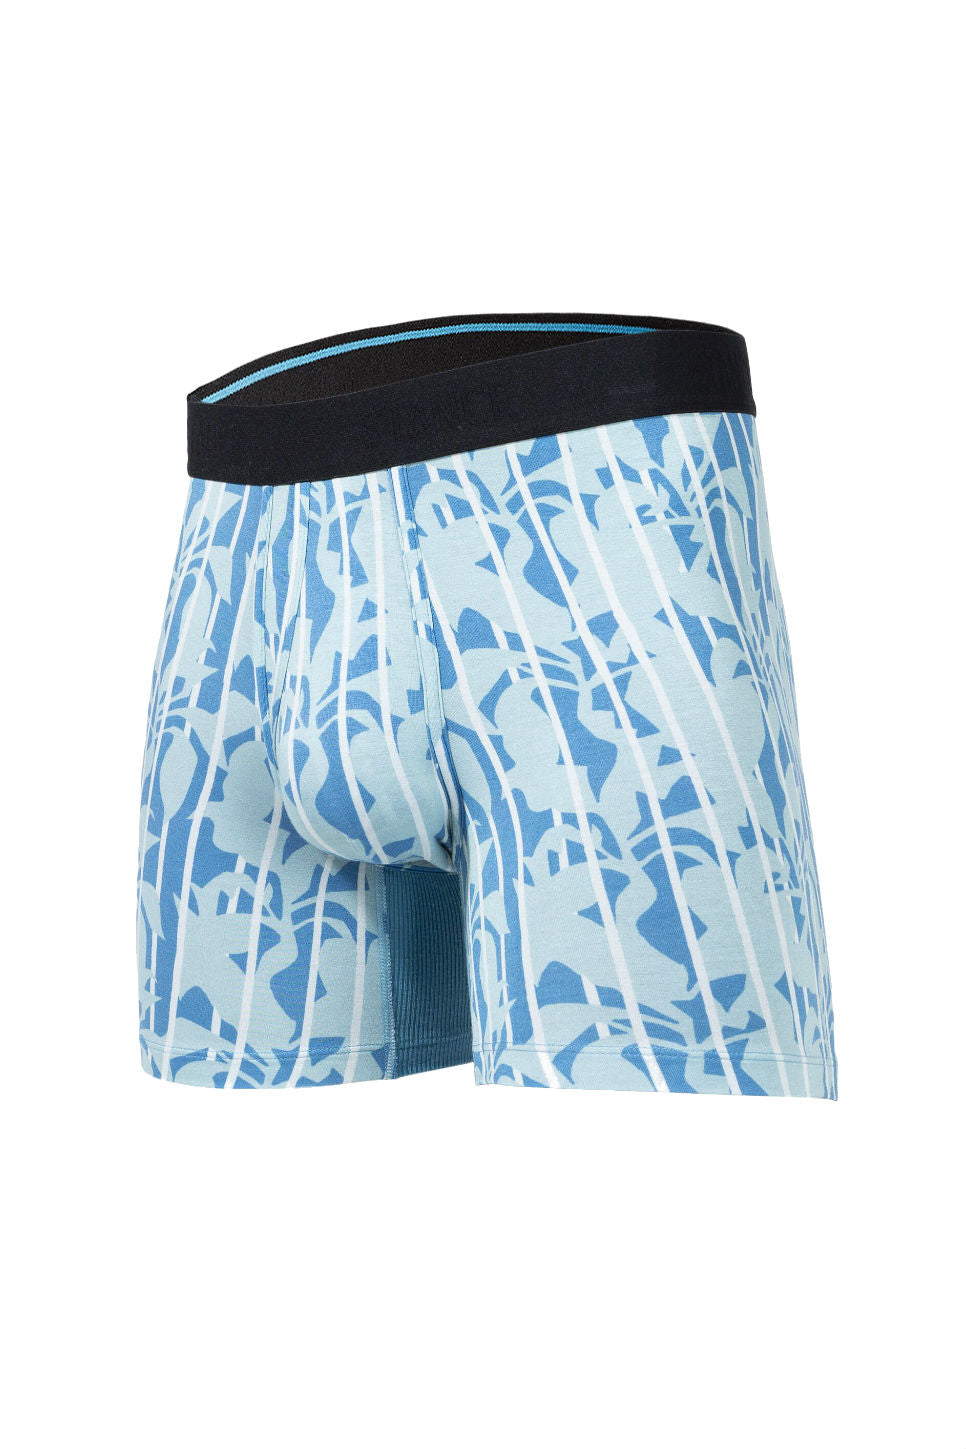 Stance - Philo Wholester - Blue - Front